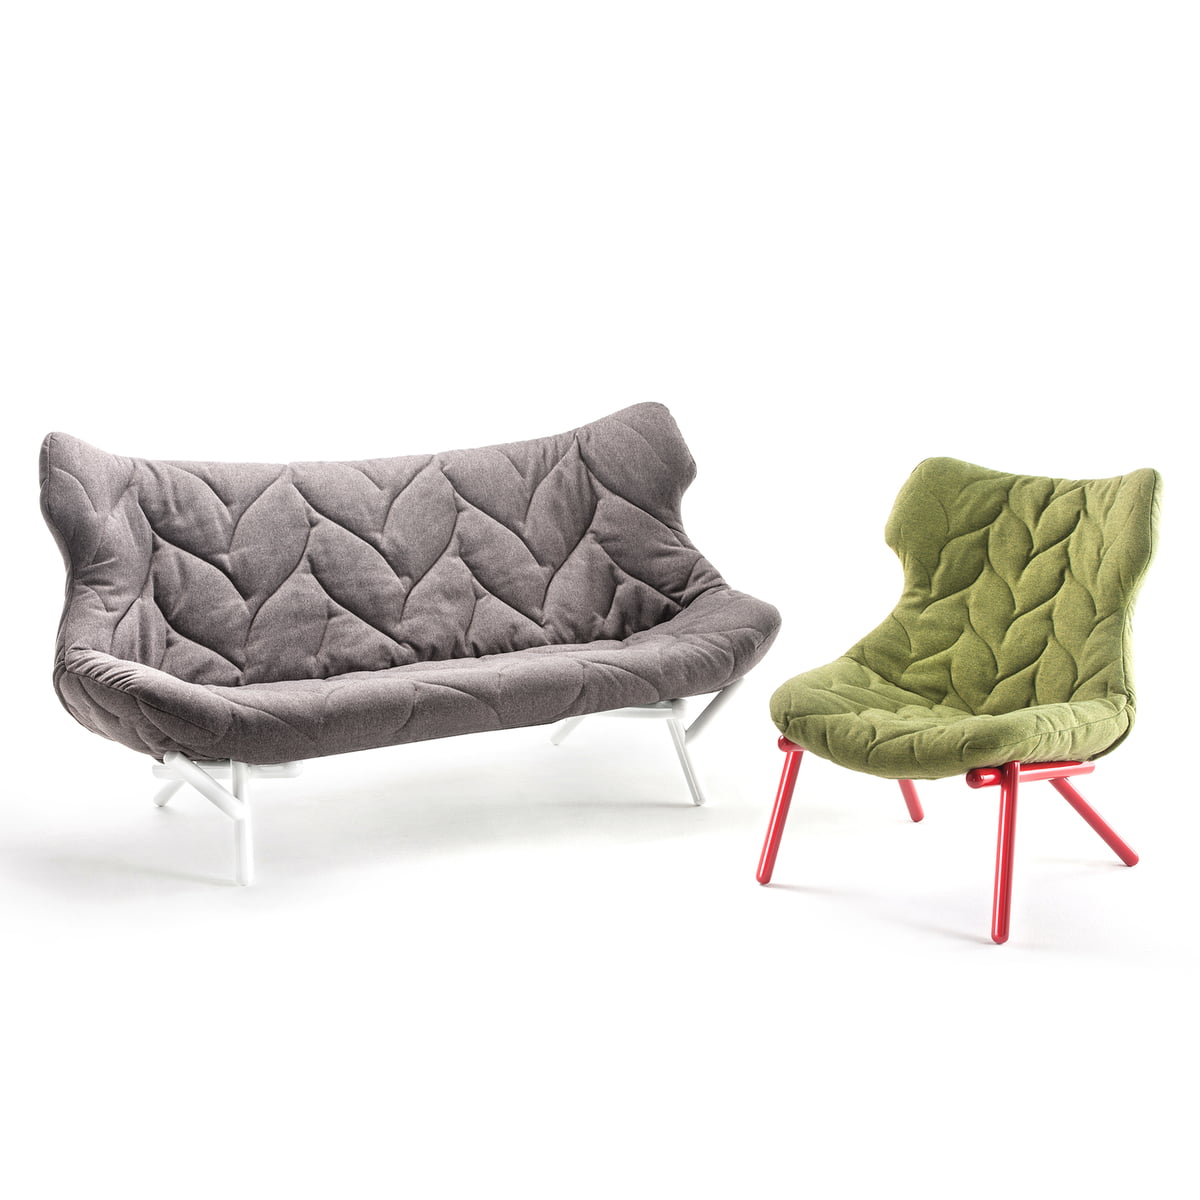 The Foliage Sofa By Kartell In The Shop